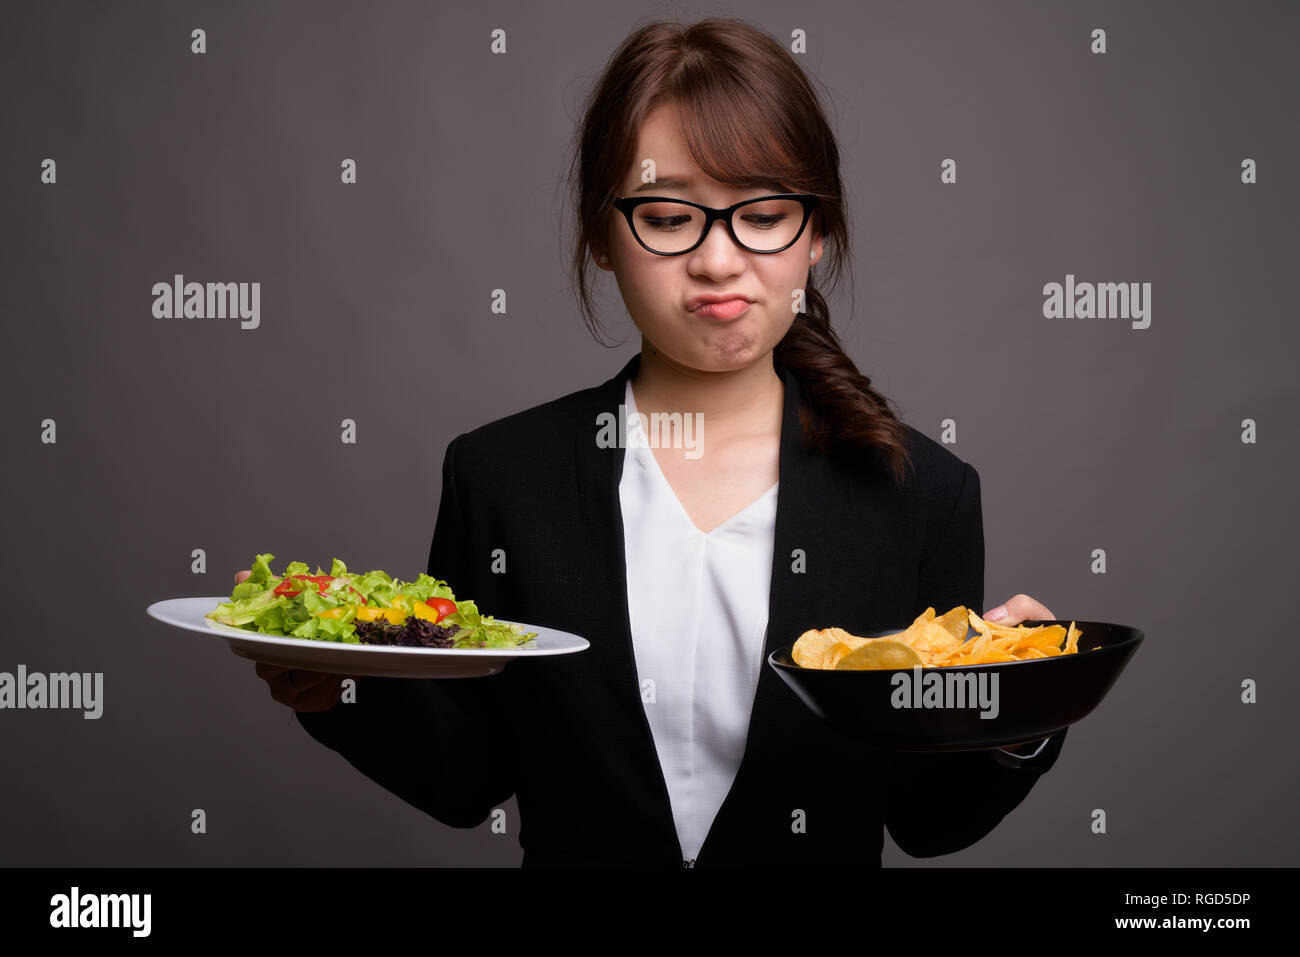 Asian businesswoman holding salad and potato chips - Stock Image